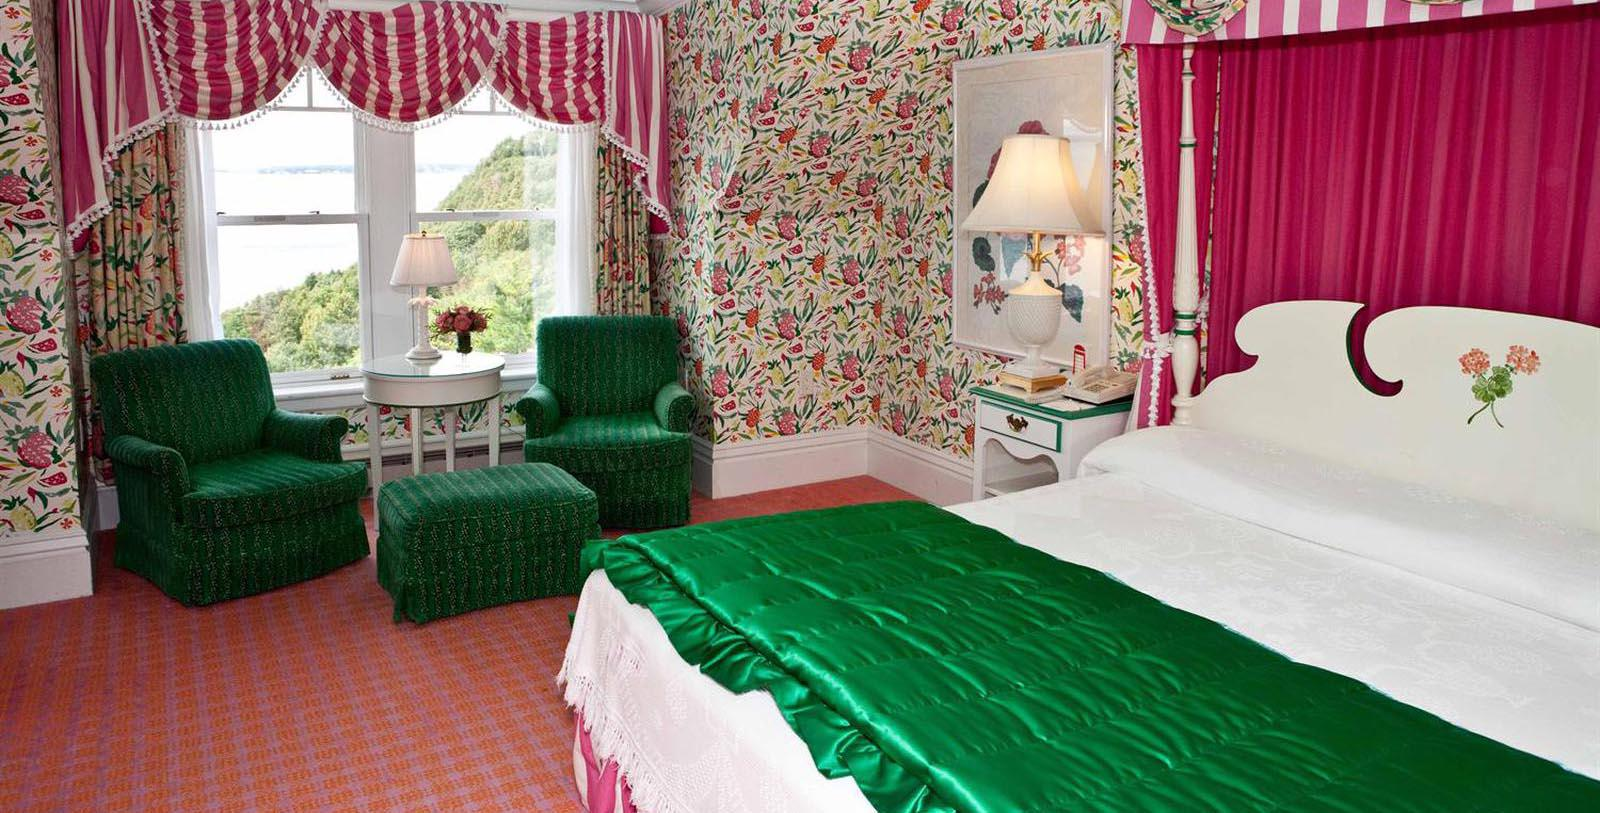 Image of Guestroom Grand Hotel, 1887, Member of Historic Hotels of America, in Mackinac Island, Michigan, Accommodations